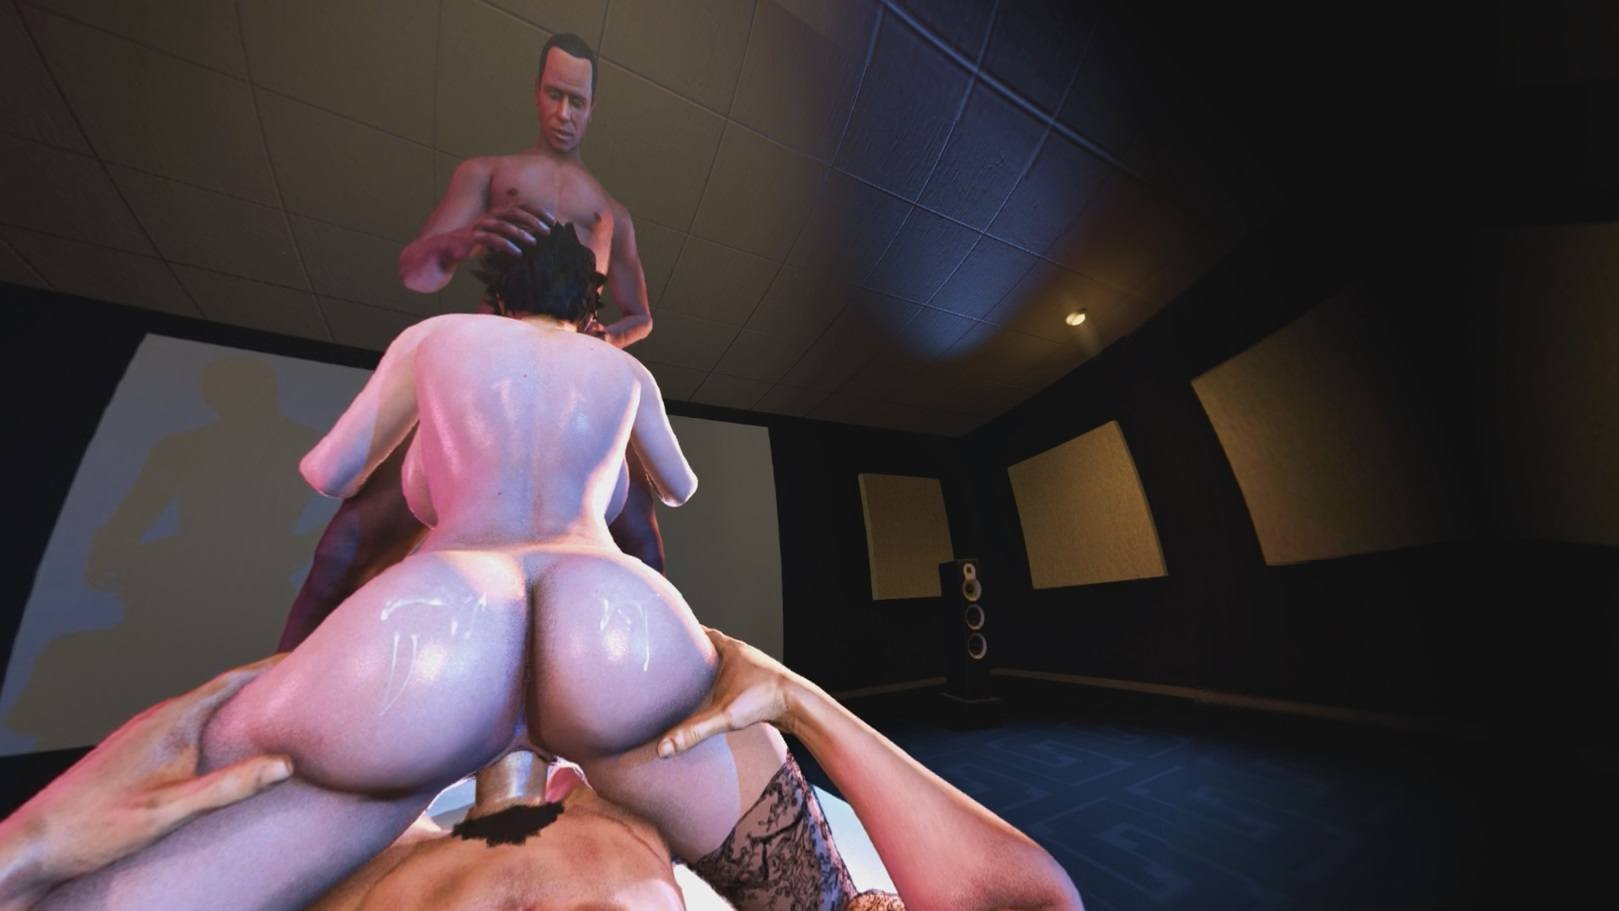 Bayonetta 2 Porn - ... Bayonetta Wanted More Attention Bayonetta DarkDreams vr porn video  vrporn.com virtual reality ...